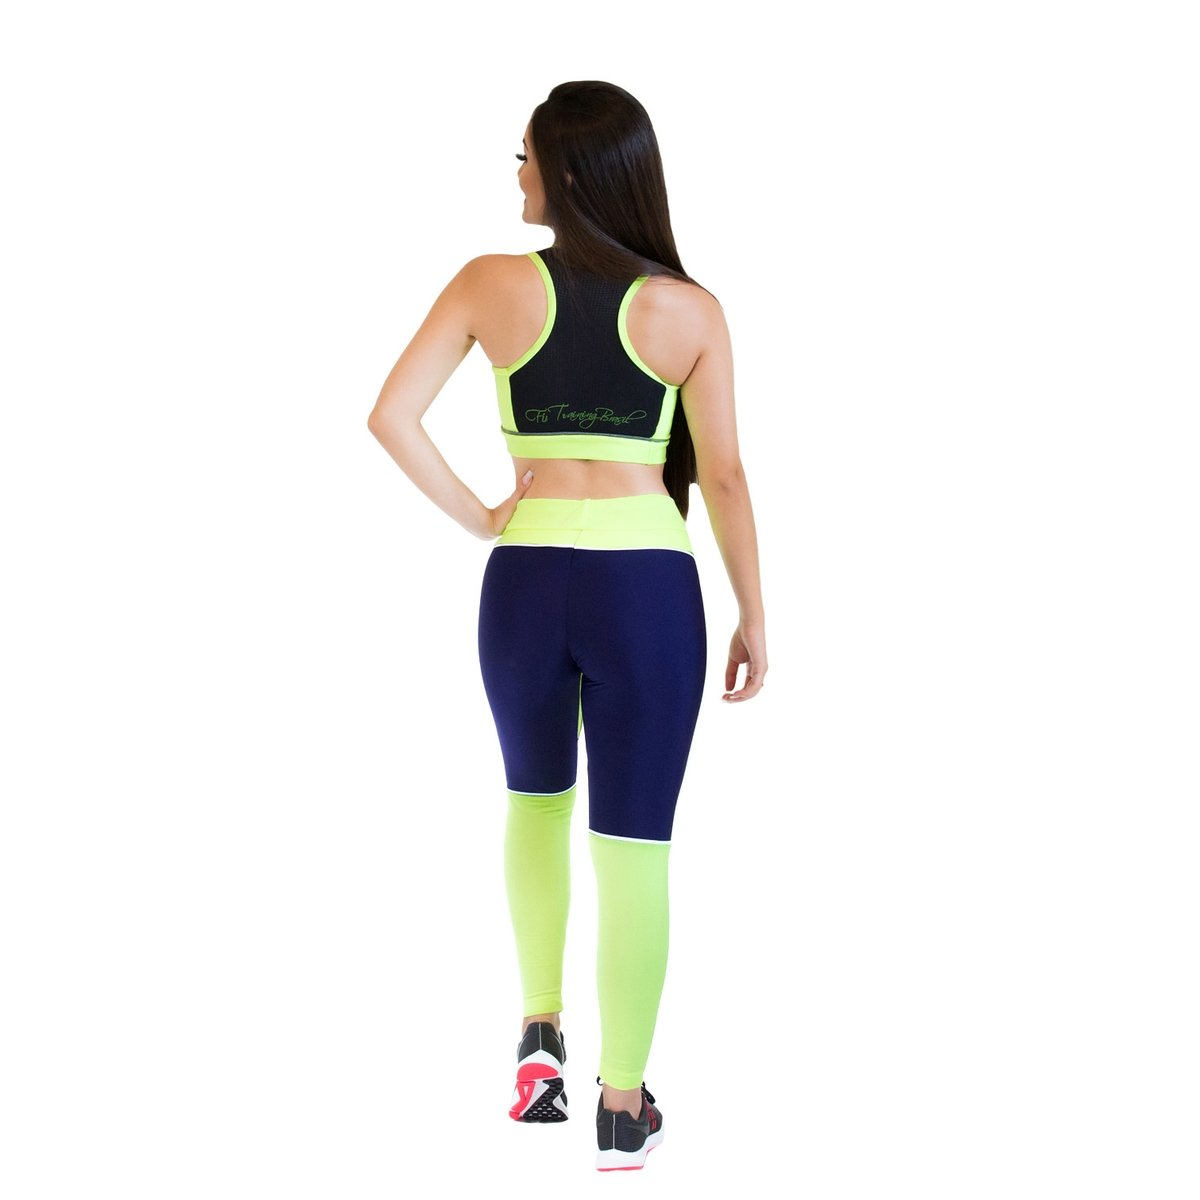 Verde Brasil Calça Training e Fit Girl Azul Power Feminina Legging g4qp0O